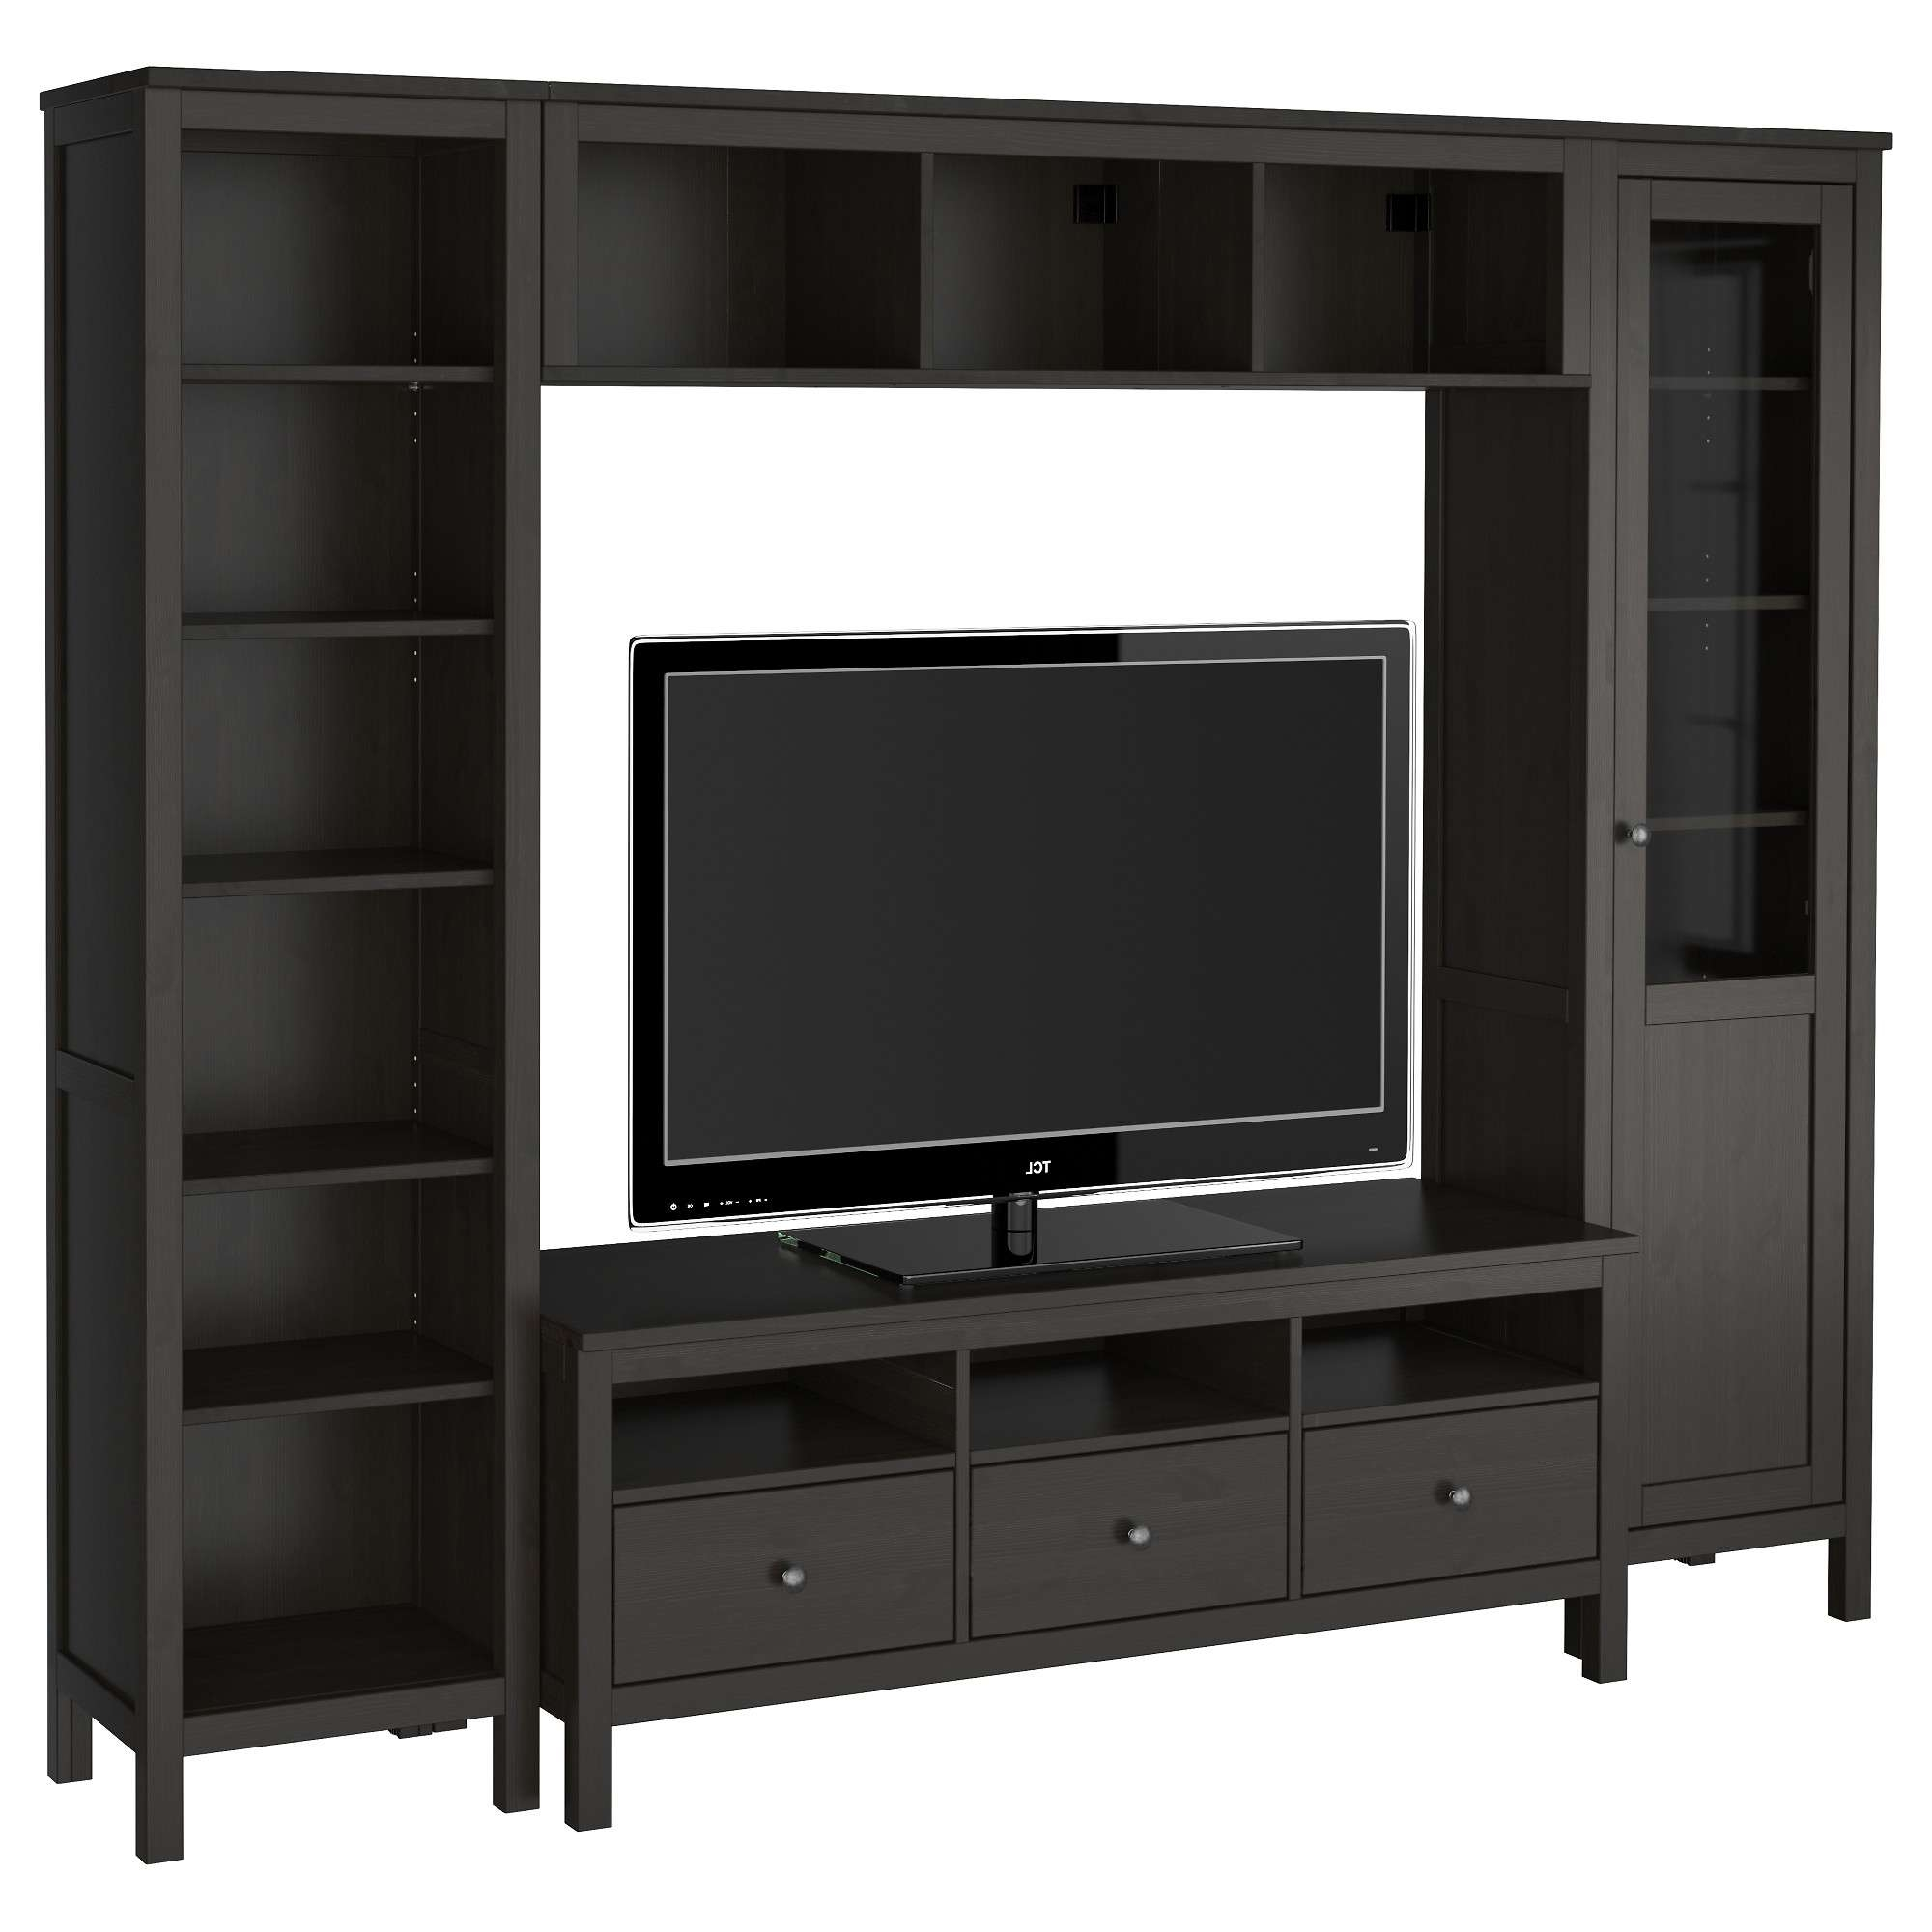 Hemnes Tv Storage Combination Black Brown Media And Furniture Cm Regarding Tall Black Tv Cabinets (View 14 of 20)